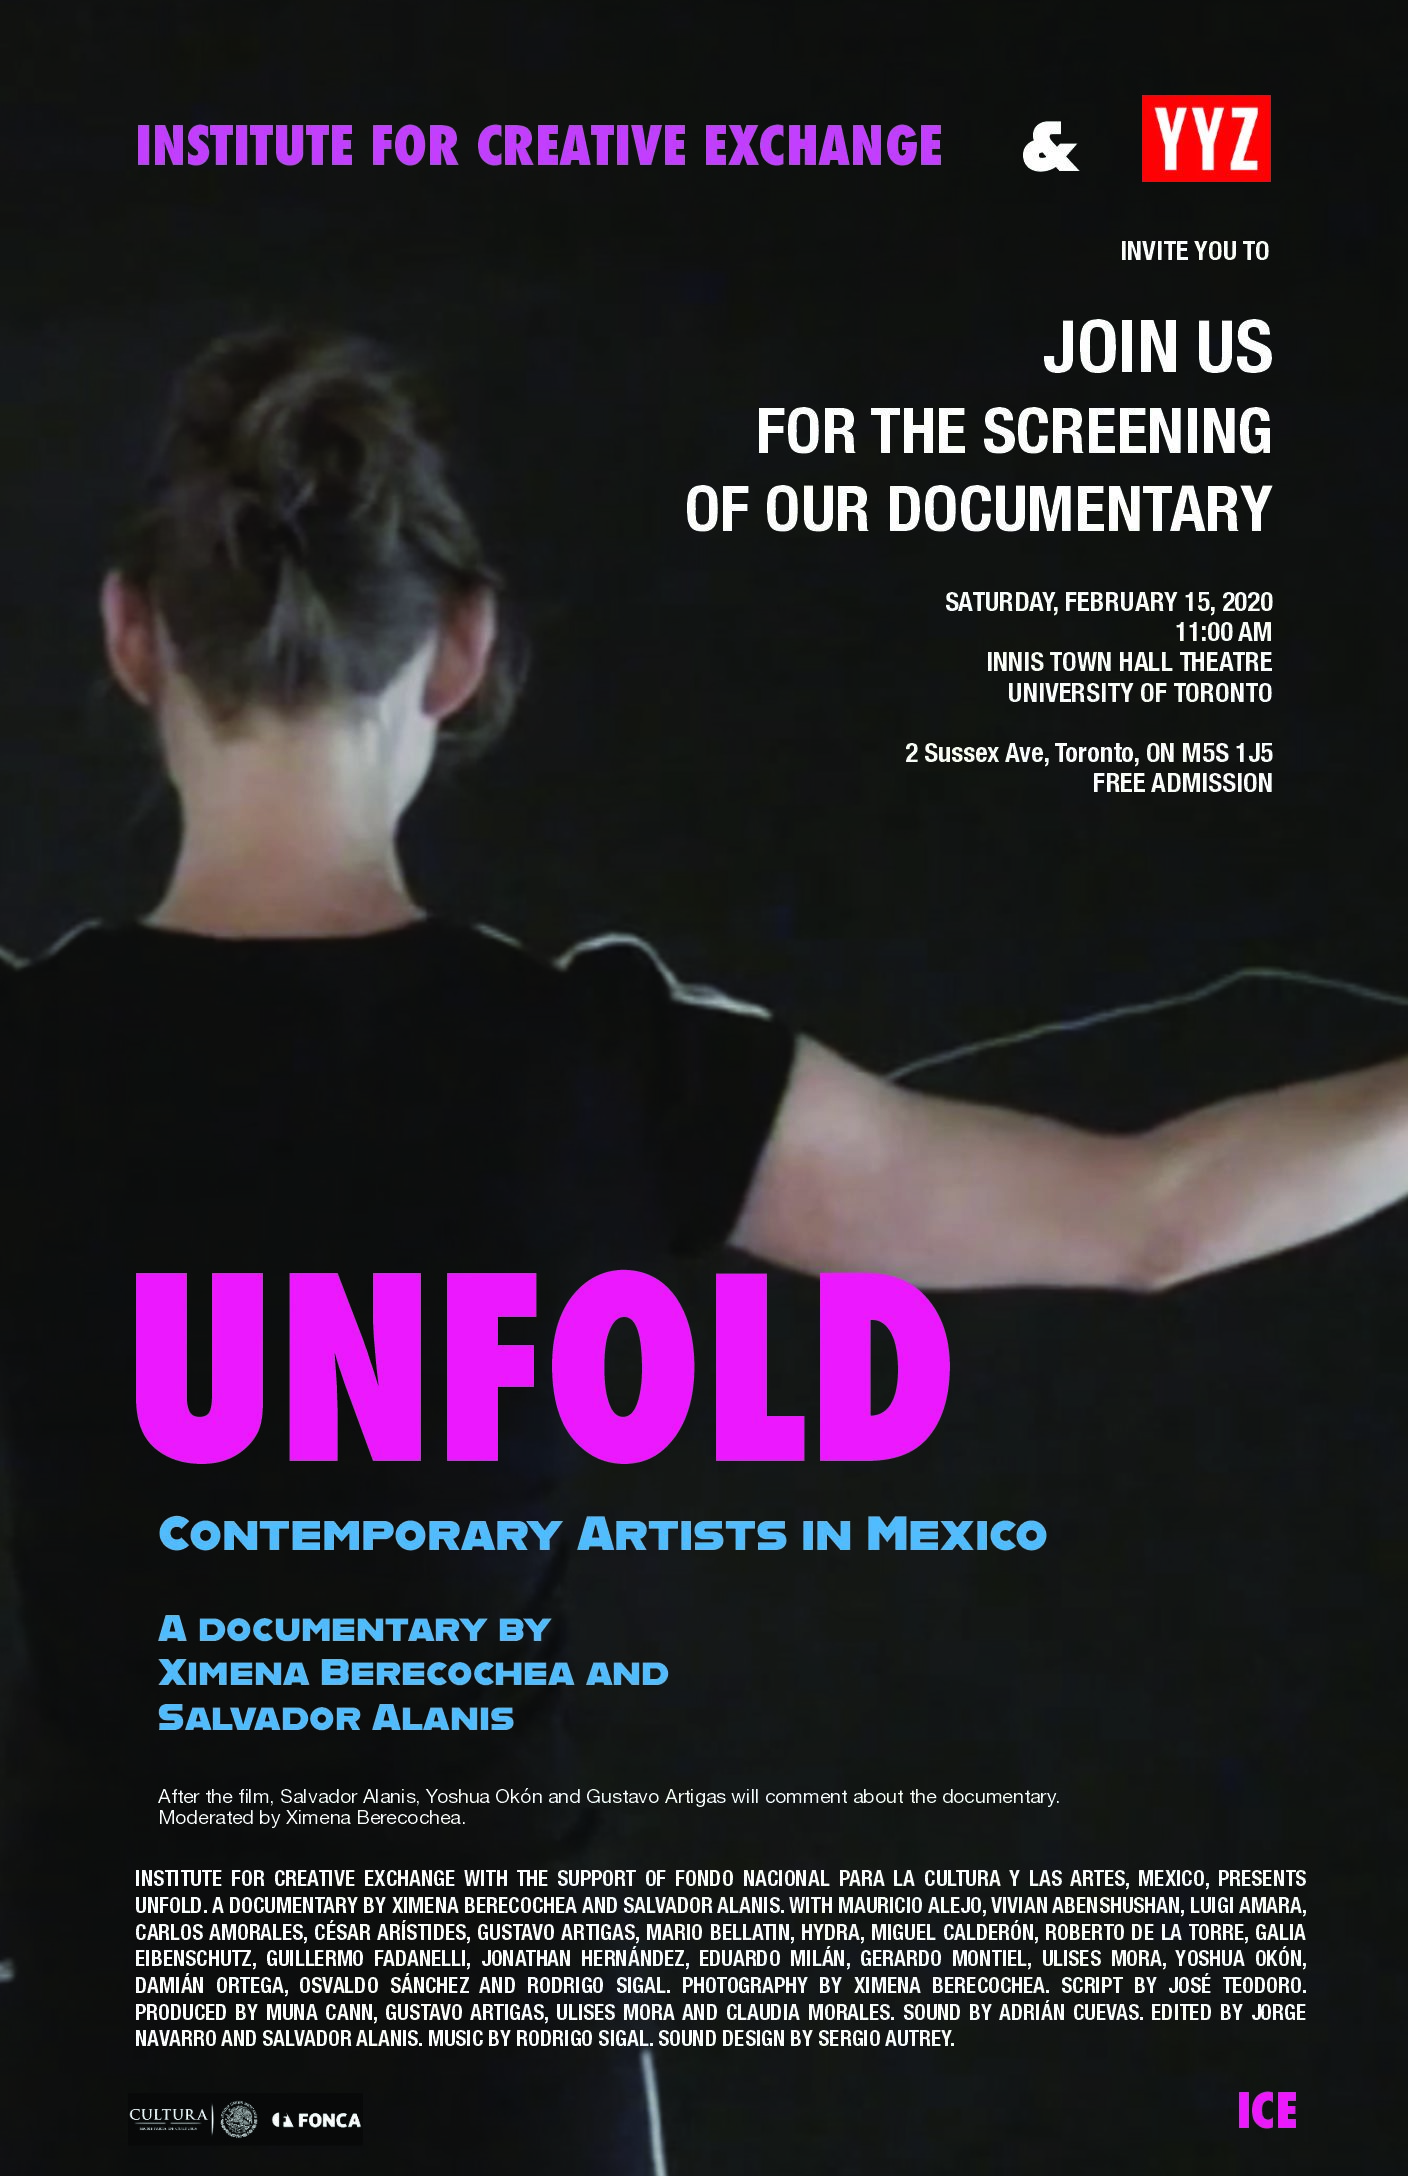 Unfold: A documentary film by Ximena Berecochea and Salvador Alanis